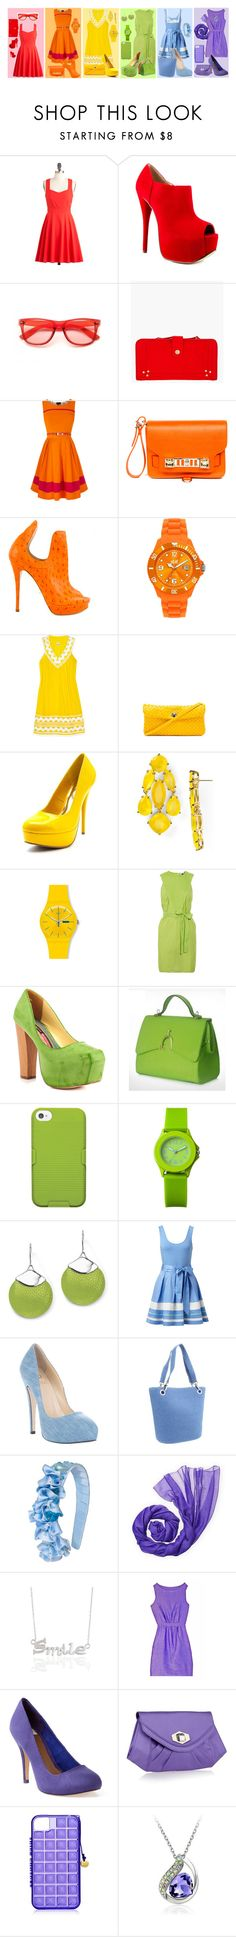 """untitled #25"" by melati-silvya-devi ❤ liked on Polyvore featuring Luichiny, Jérôme Dreyfuss, Oasis, Proenza Schouler, Ice-Watch, Milly, Bottega Veneta, Charlotte Russe, Kate Spade and Swatch"